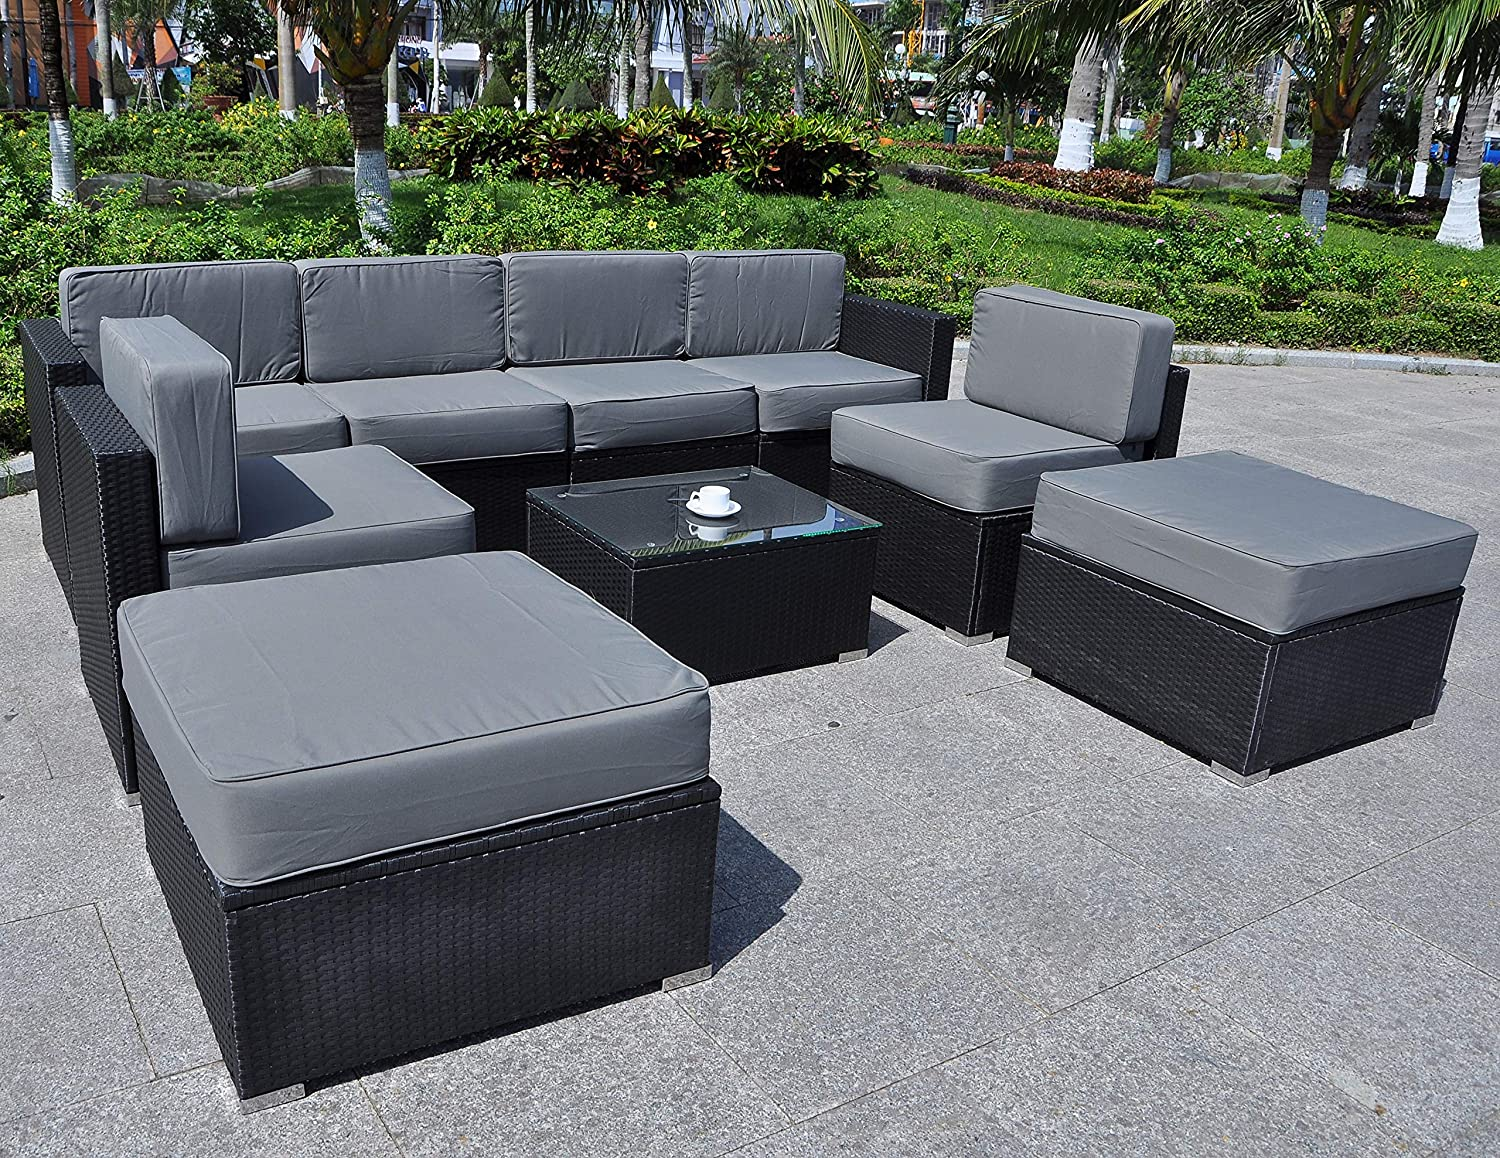 Mcombo Patio Furniture Sectional Set Outdoor Wicker Sofa Lawn Rattan Conversation Chair with 6 Inch Cushions and Tea Table Gray 6082-9PC